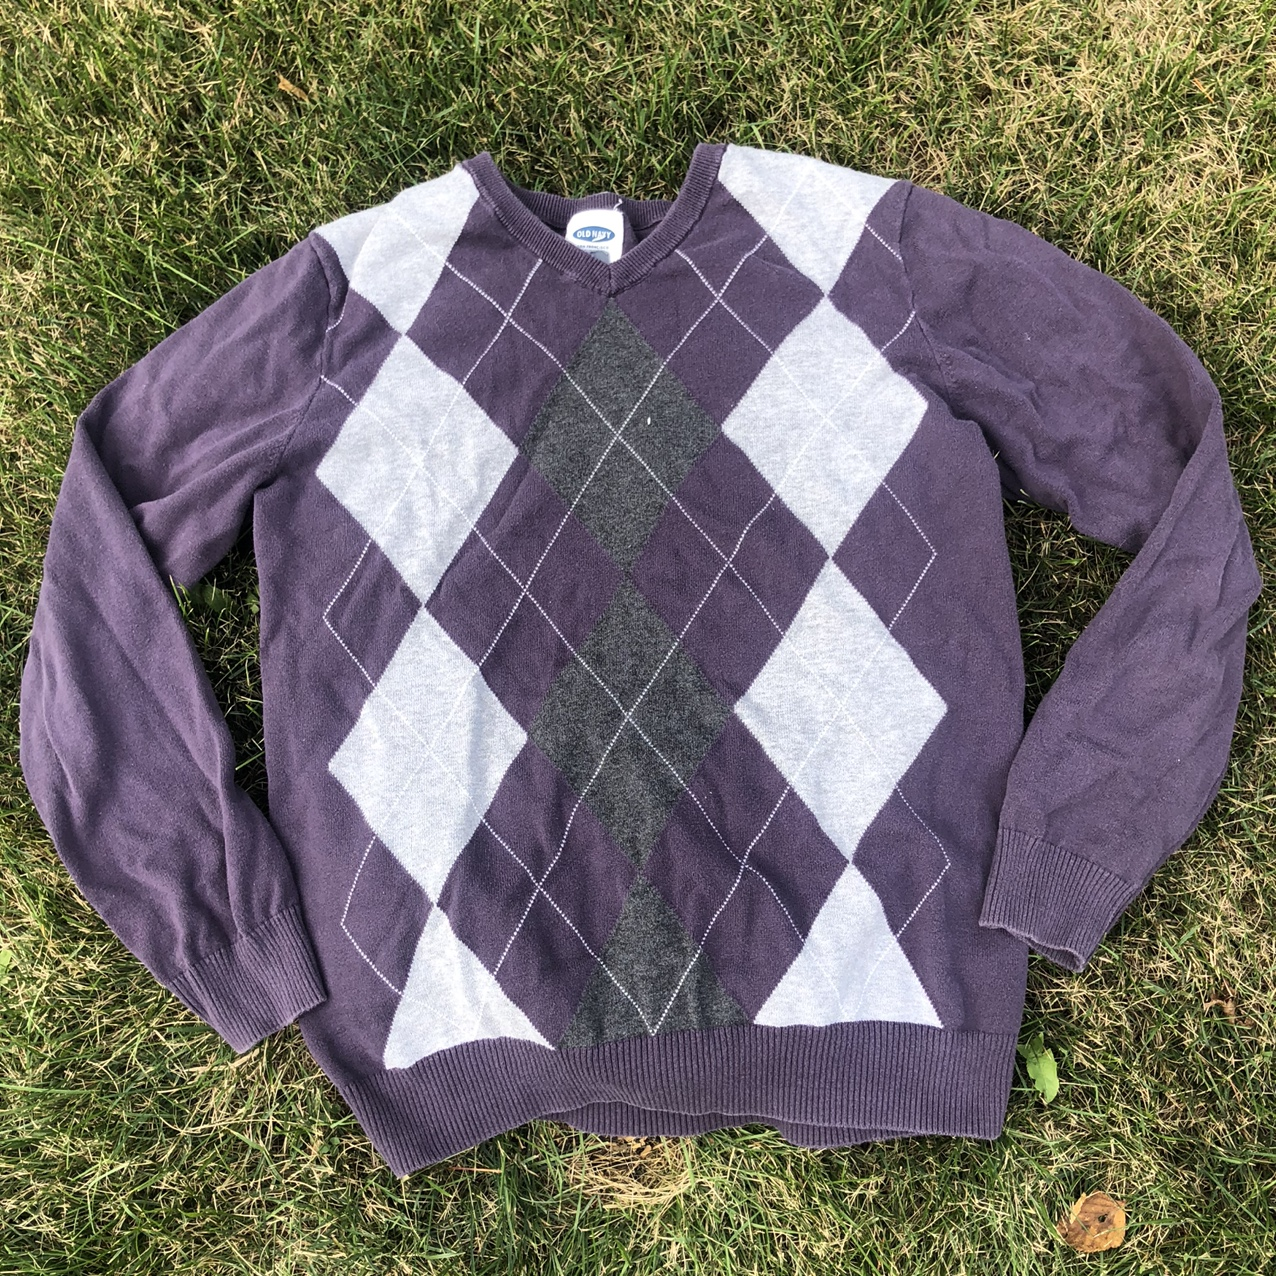 Product Image 1 - adorable purple old navy argyle